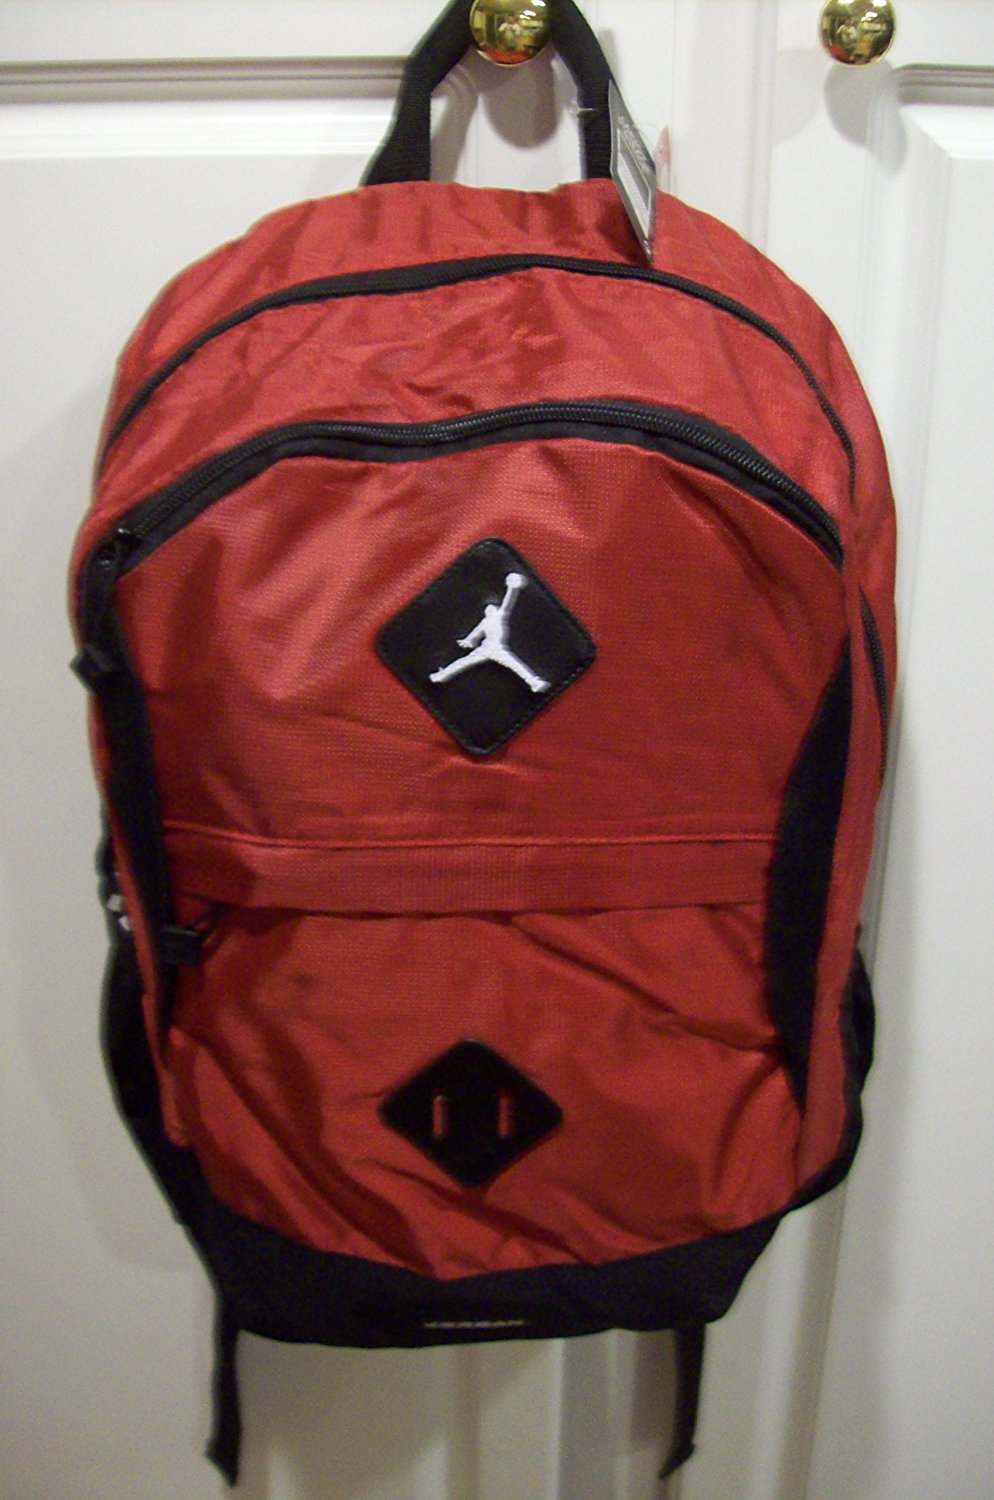 7c09334767 Get Quotations · Nike Jordan Red Black Jumpman Laptop Backpack